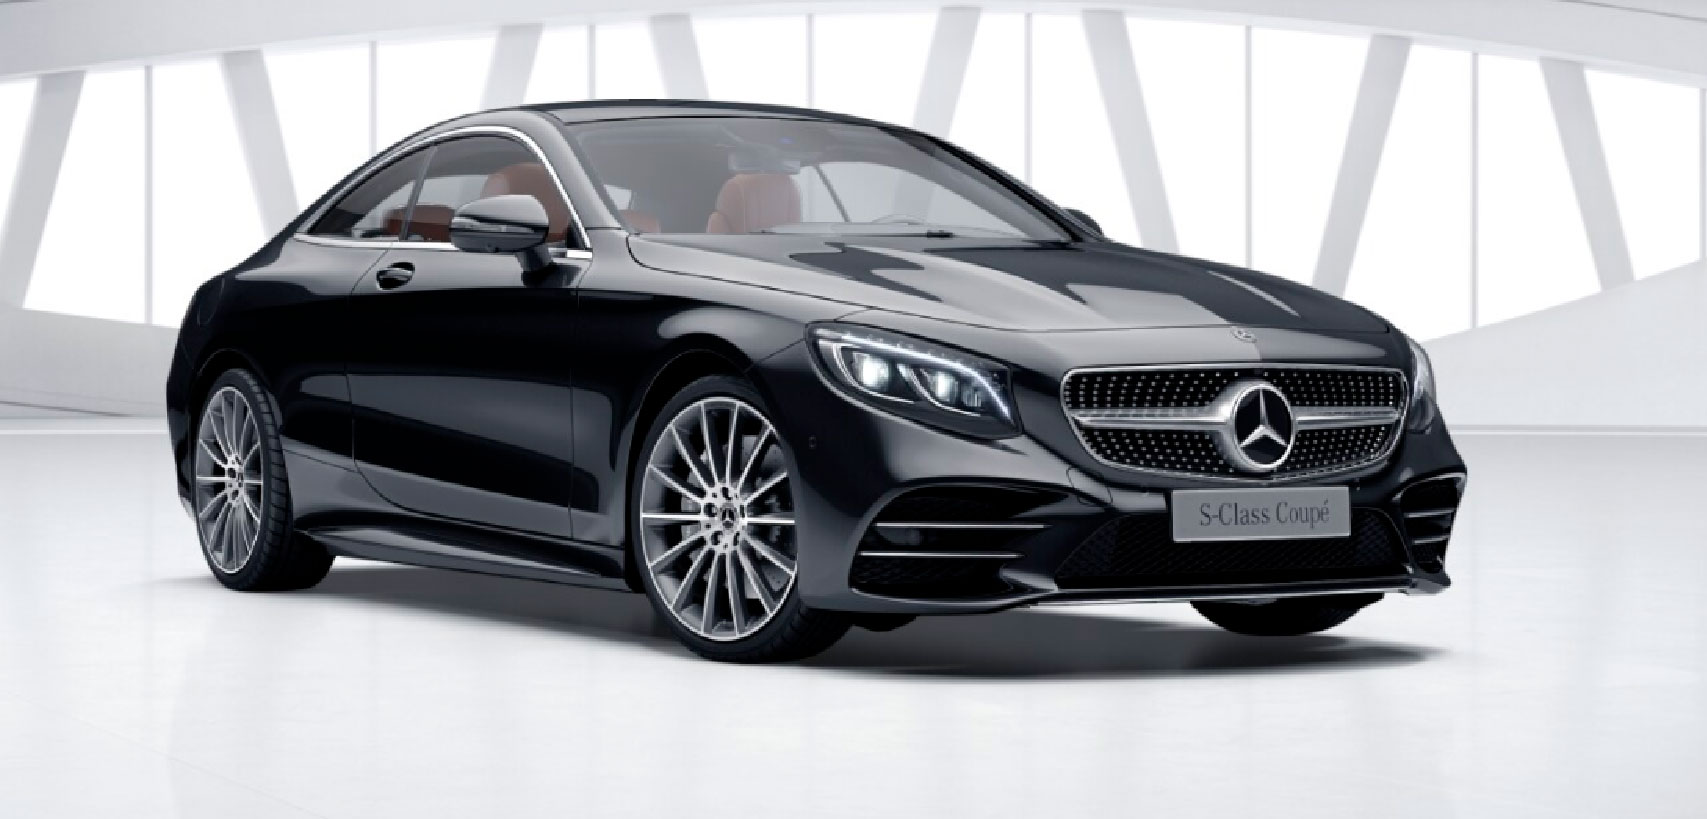 Mercedes-Benz S-Class Coupe 0052600077